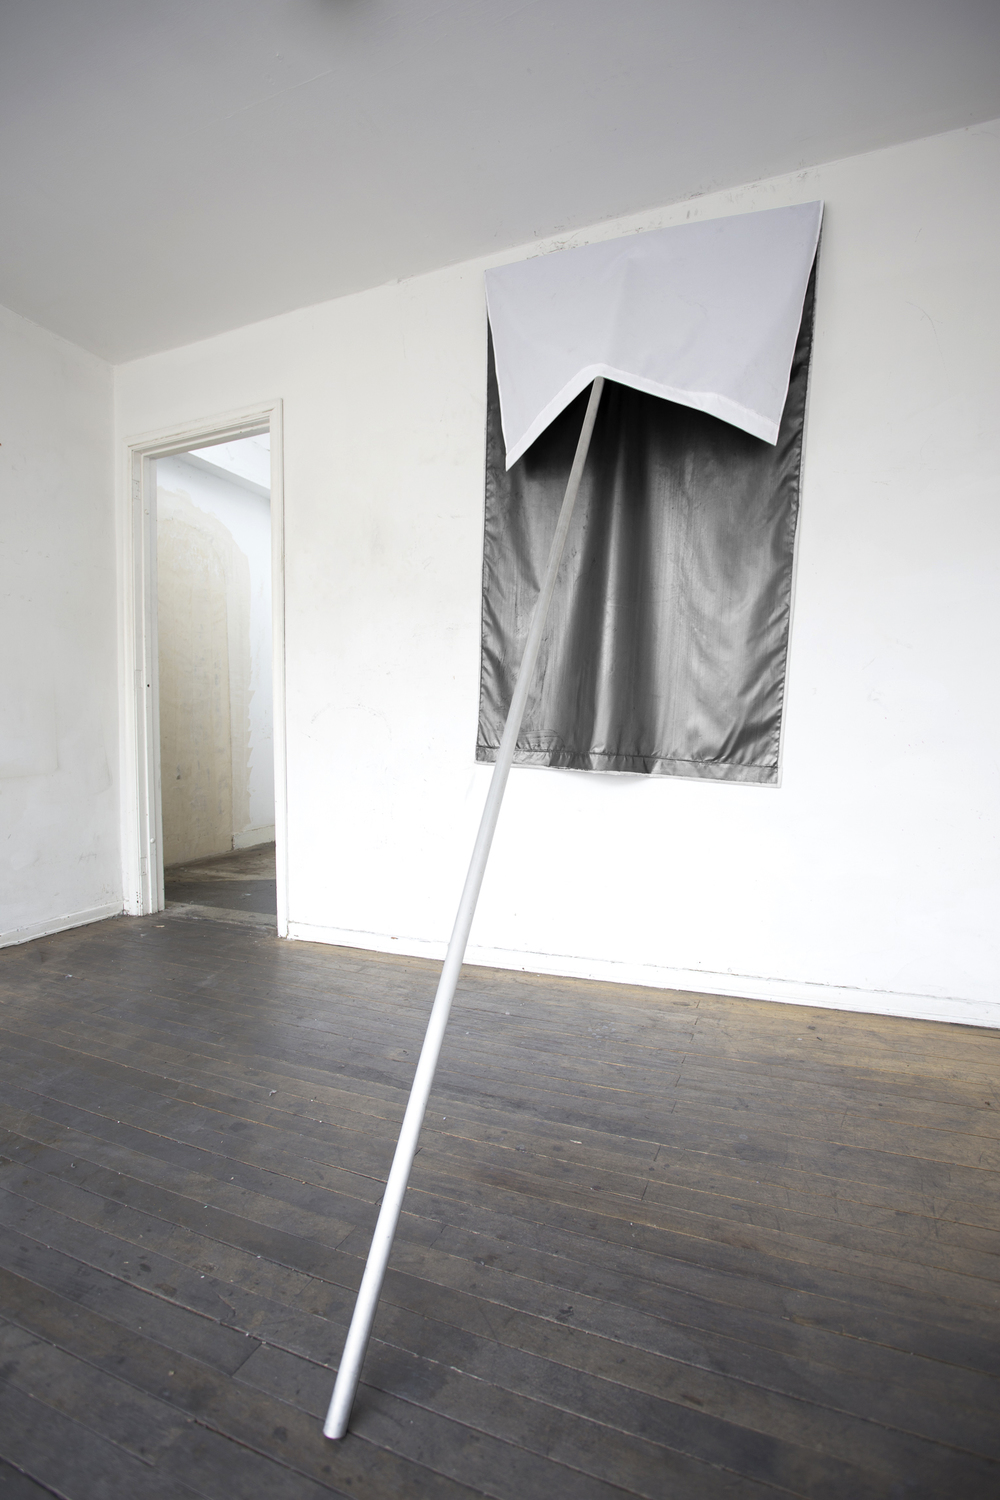 Santiago Reyes Villaveces  ©  2014 ,  Flag . Wood, graphite and fabric. 98.4 x 39.3 x 59 in (250 x 100 x 150 cm). Courtesy of the artist.